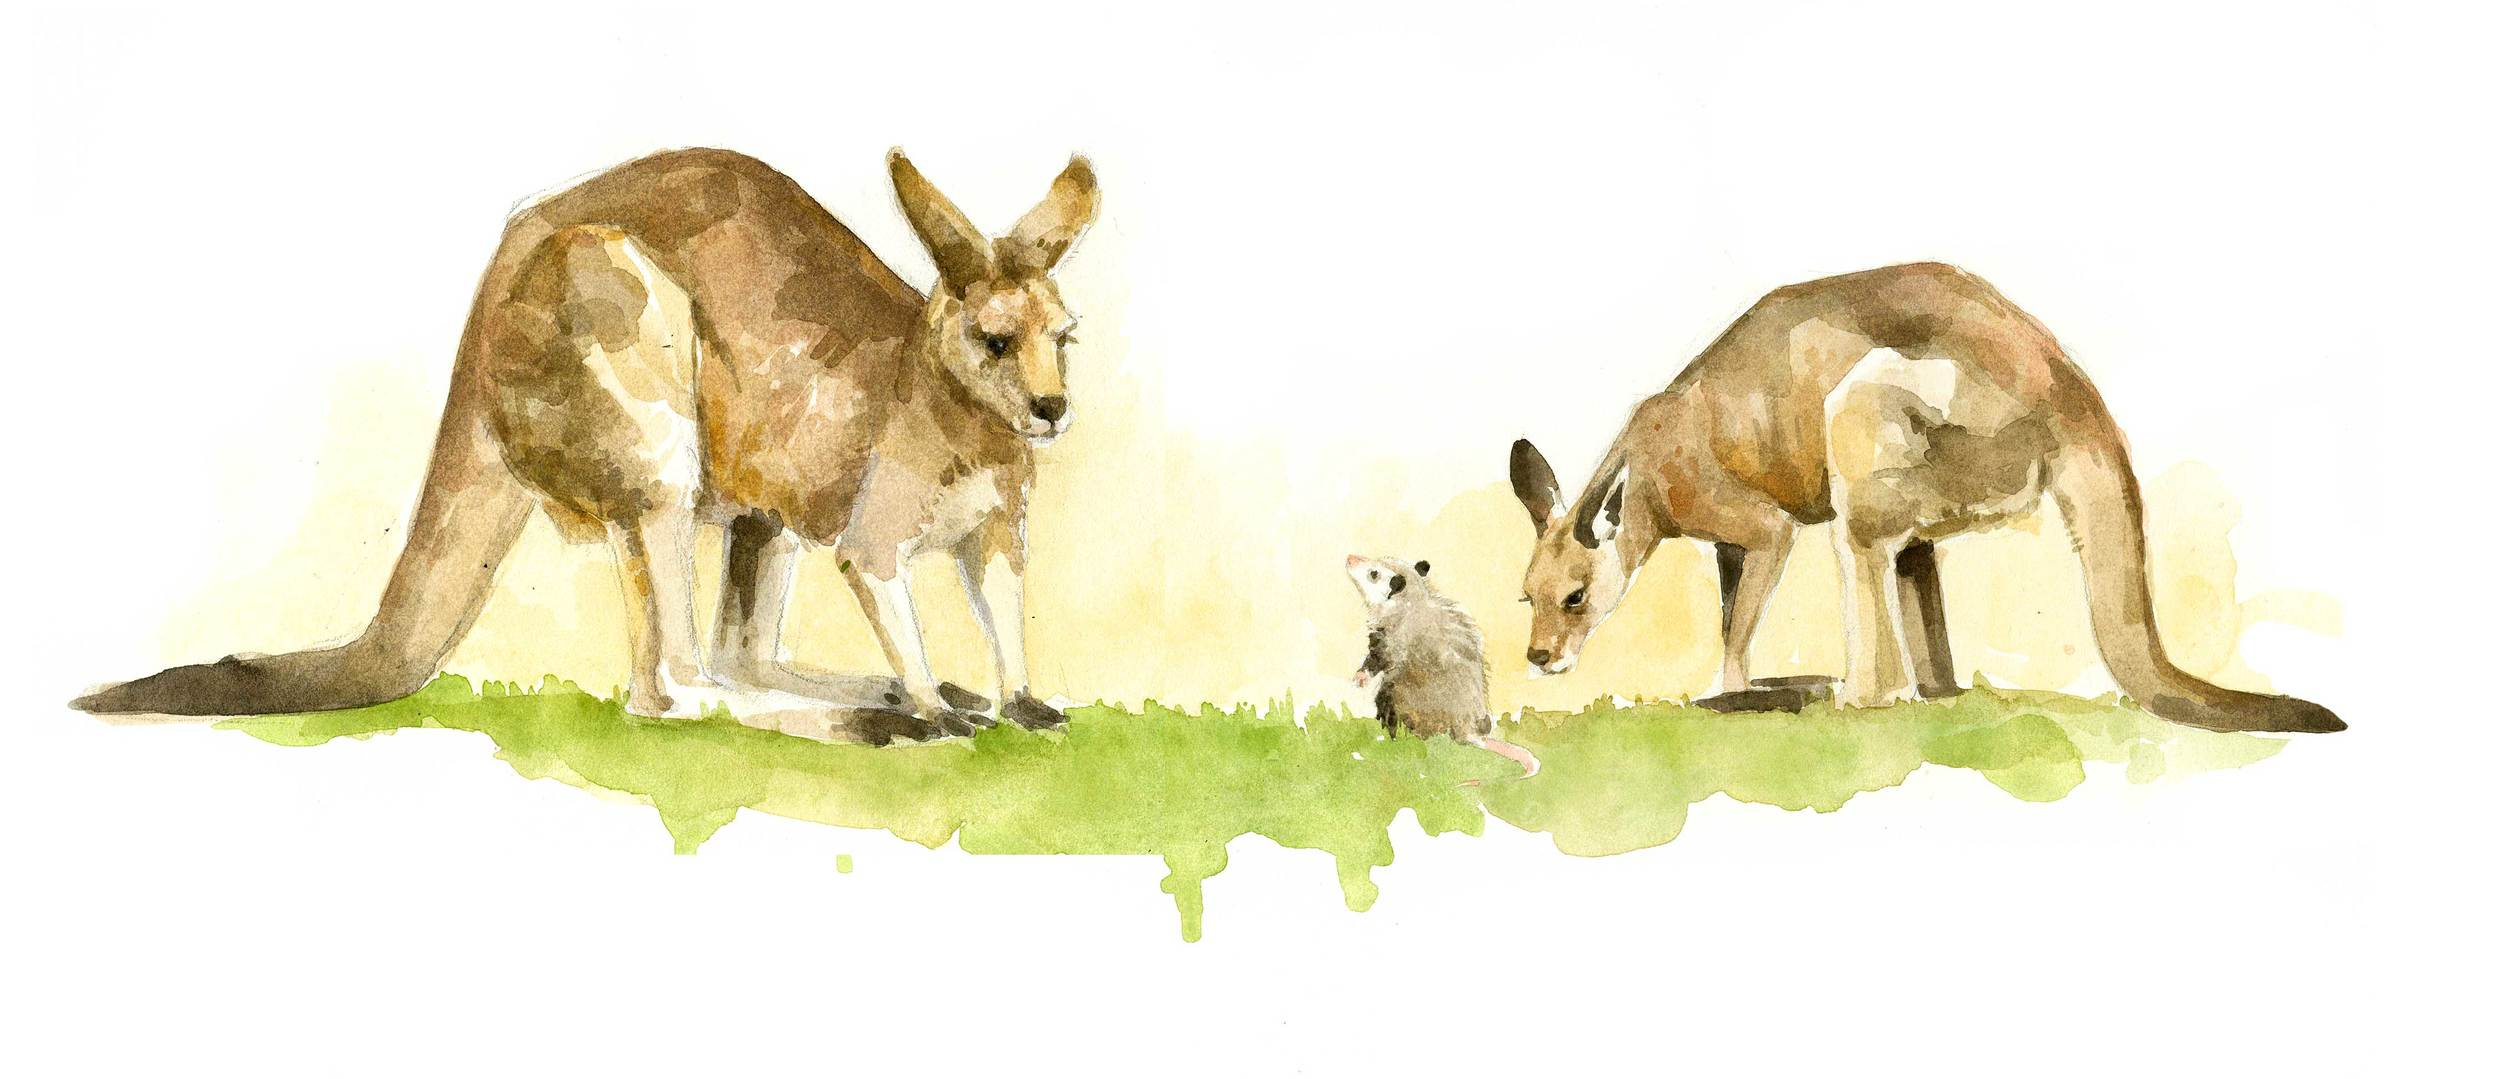 kangarooillustration-web.jpg